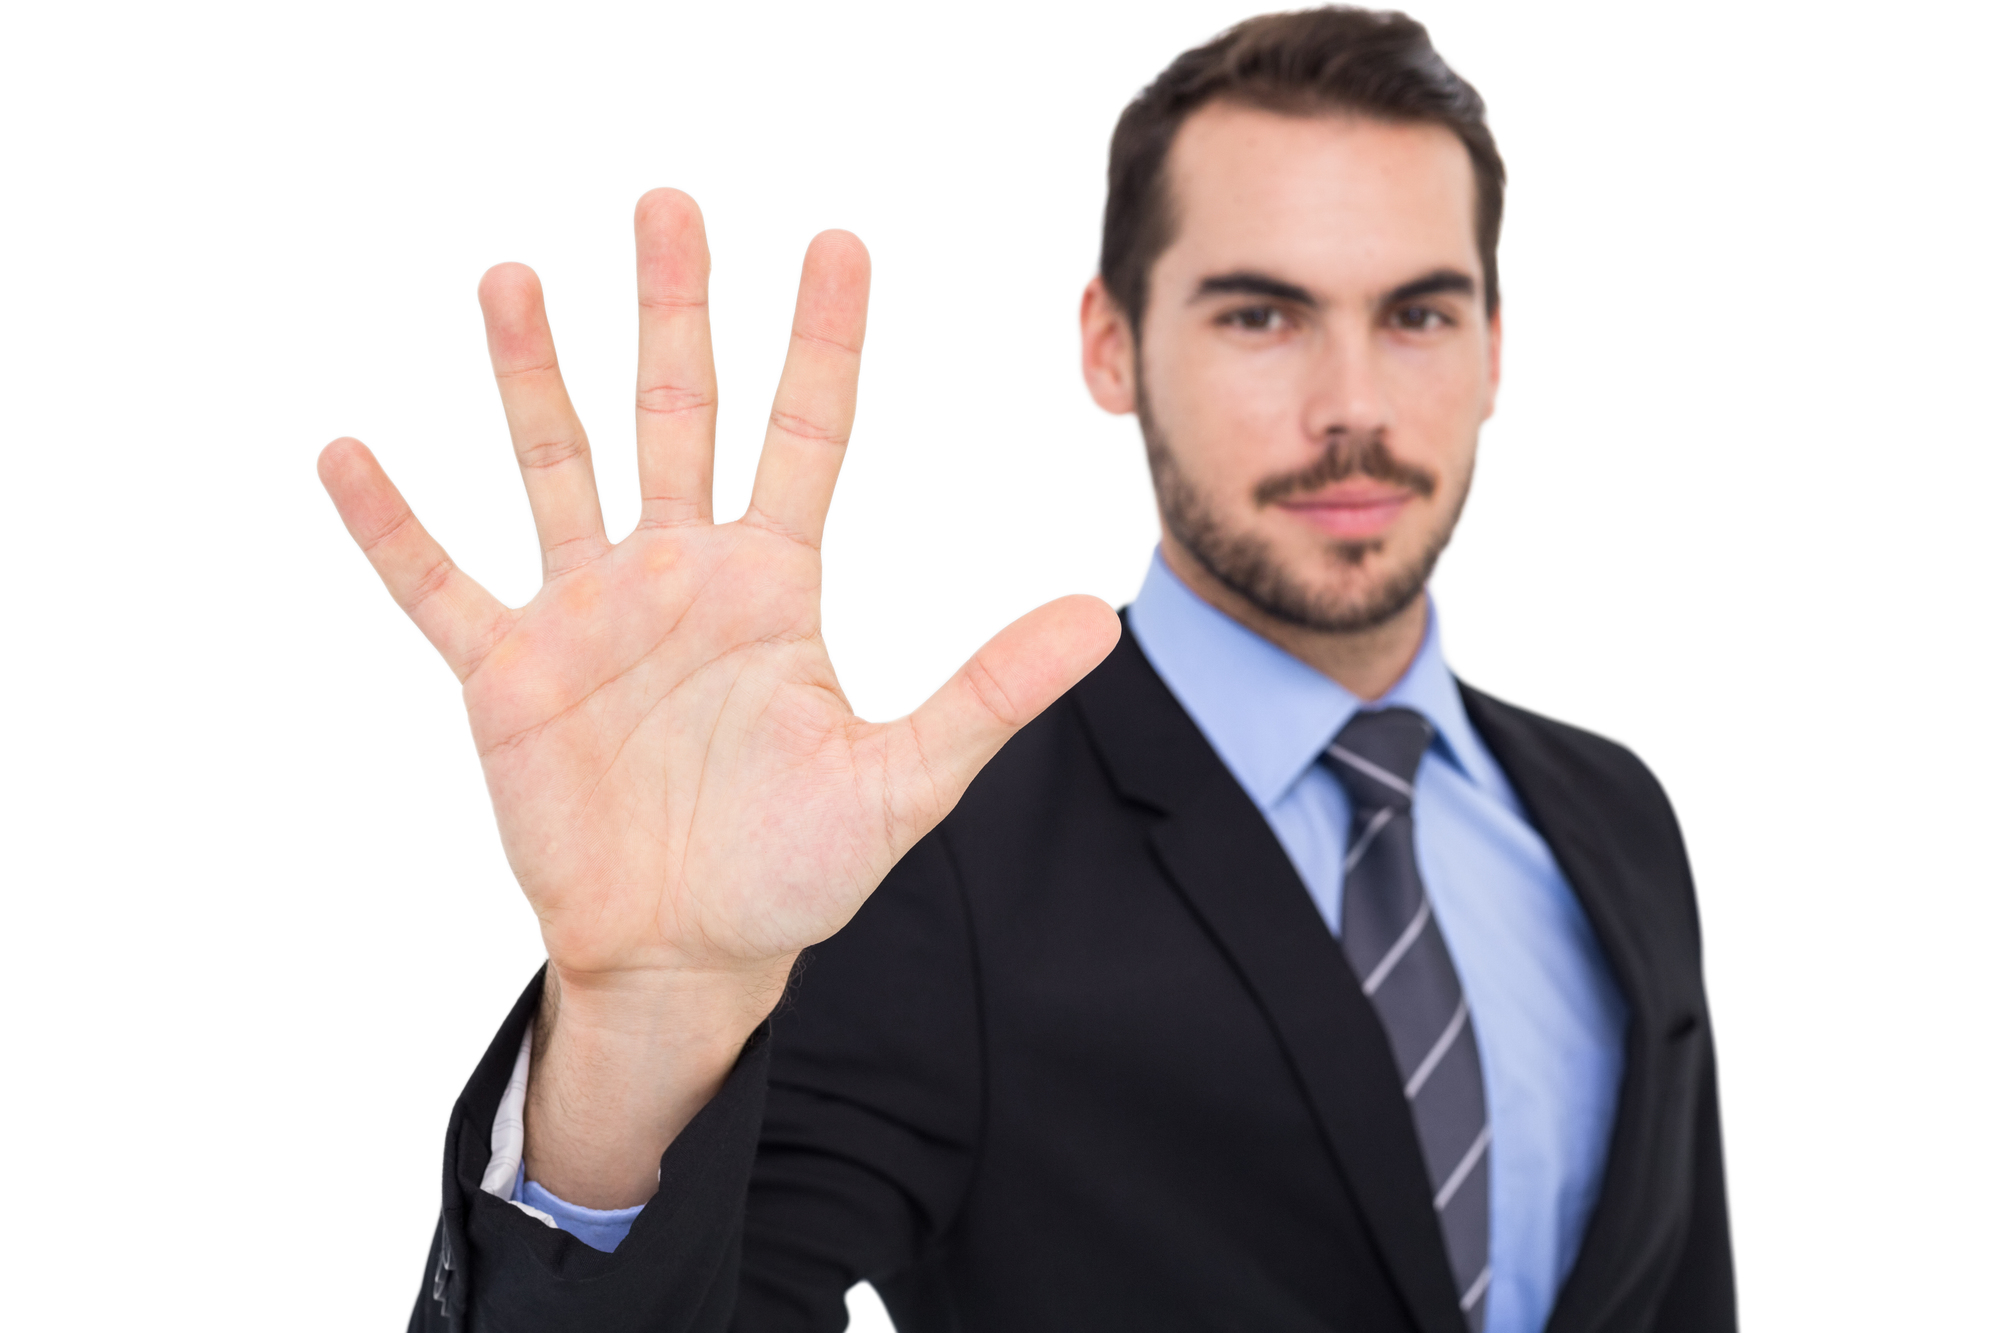 Smiling businessman with fingers spread out on white background